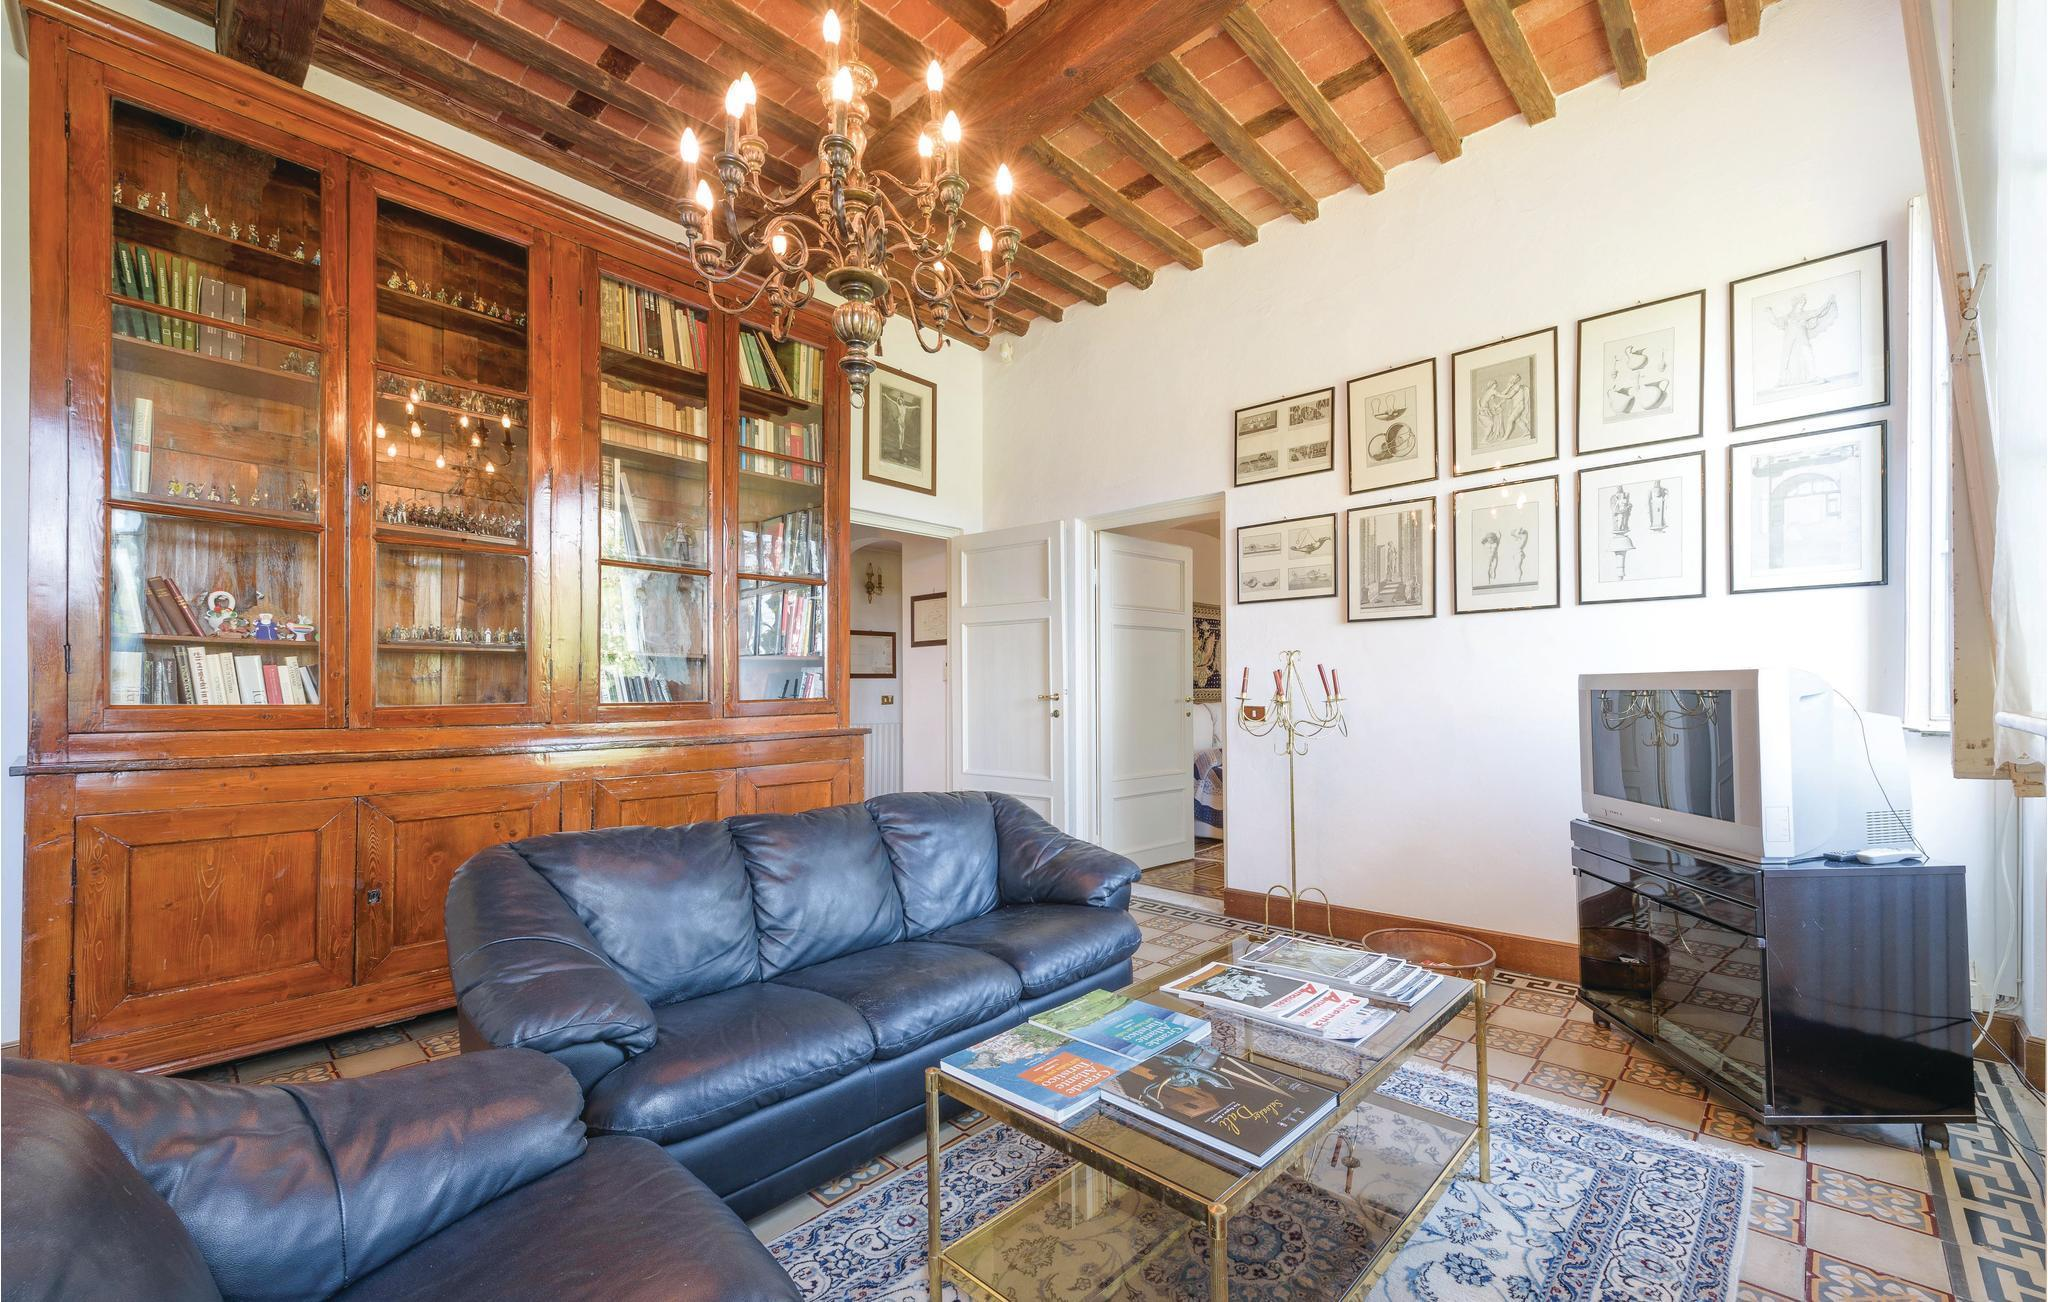 Holiday Home Apartment 9 Persons Trav Terza Via Camaiore Lucca 55100 Lucca Lu 140 Itl438 Feline Holidays